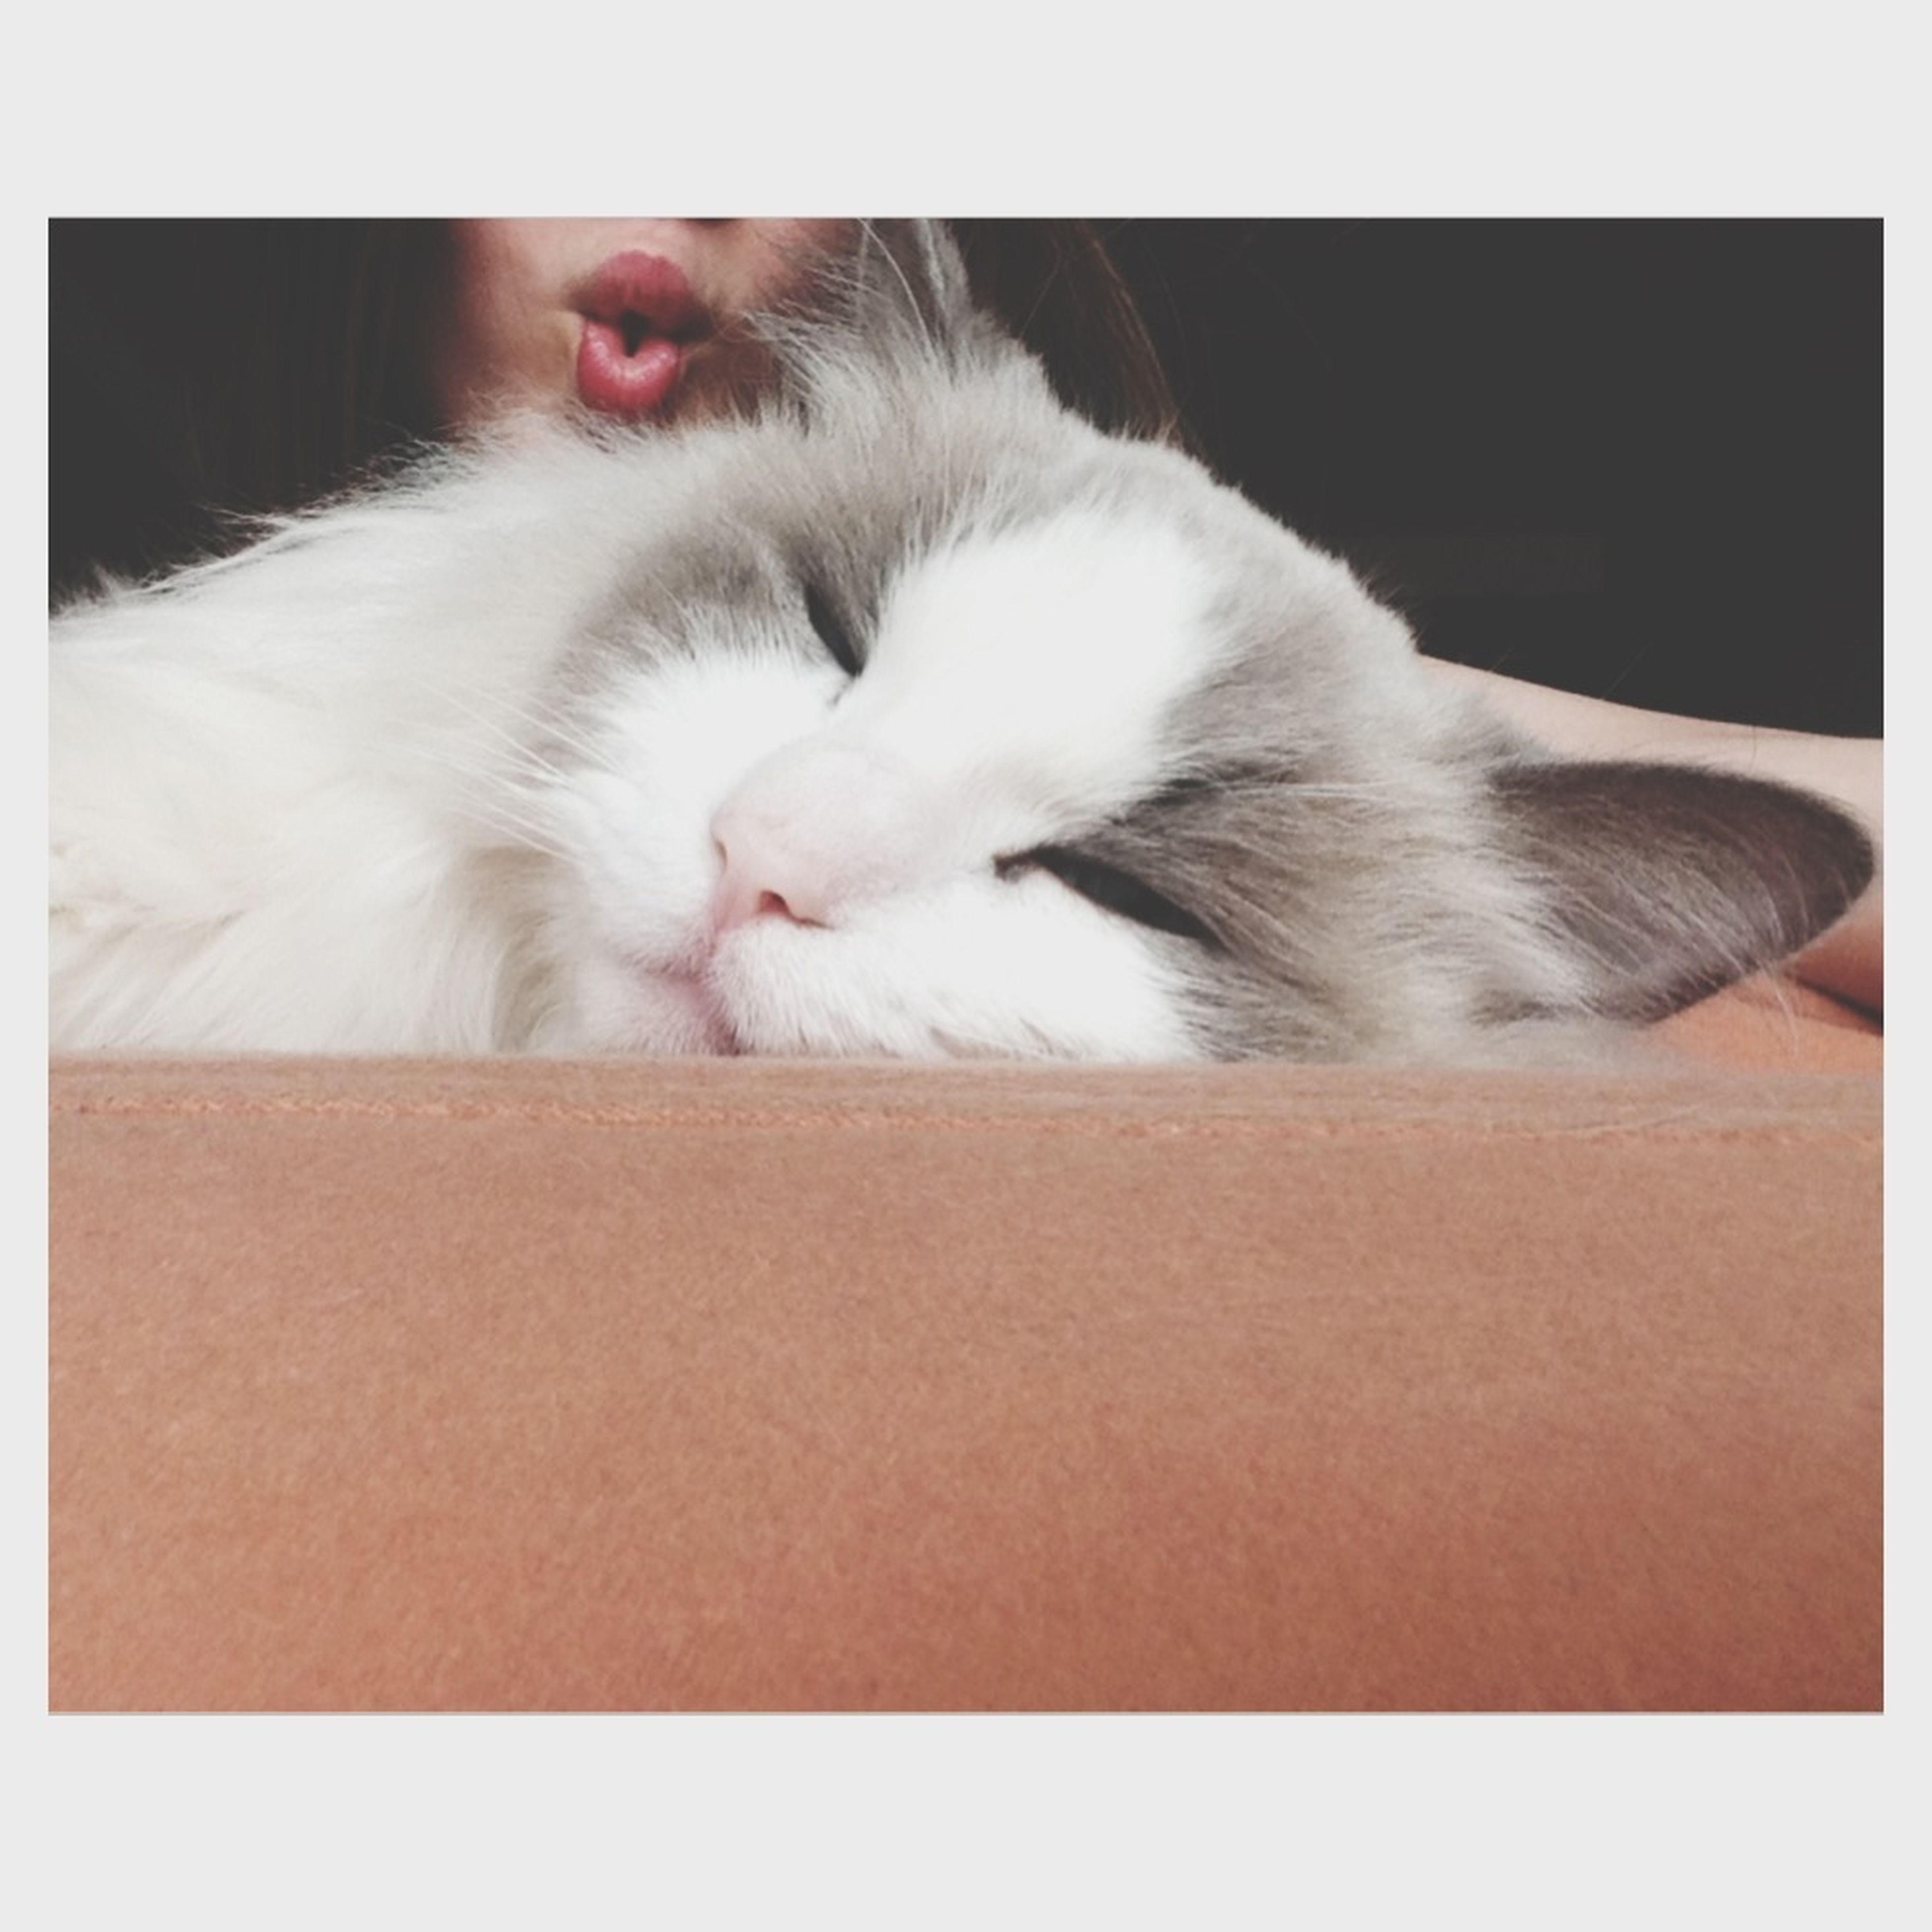 transfer print, pets, domestic animals, animal themes, one animal, domestic cat, mammal, cat, auto post production filter, feline, relaxation, indoors, sleeping, resting, lying down, zoology, whisker, animal head, white color, close-up